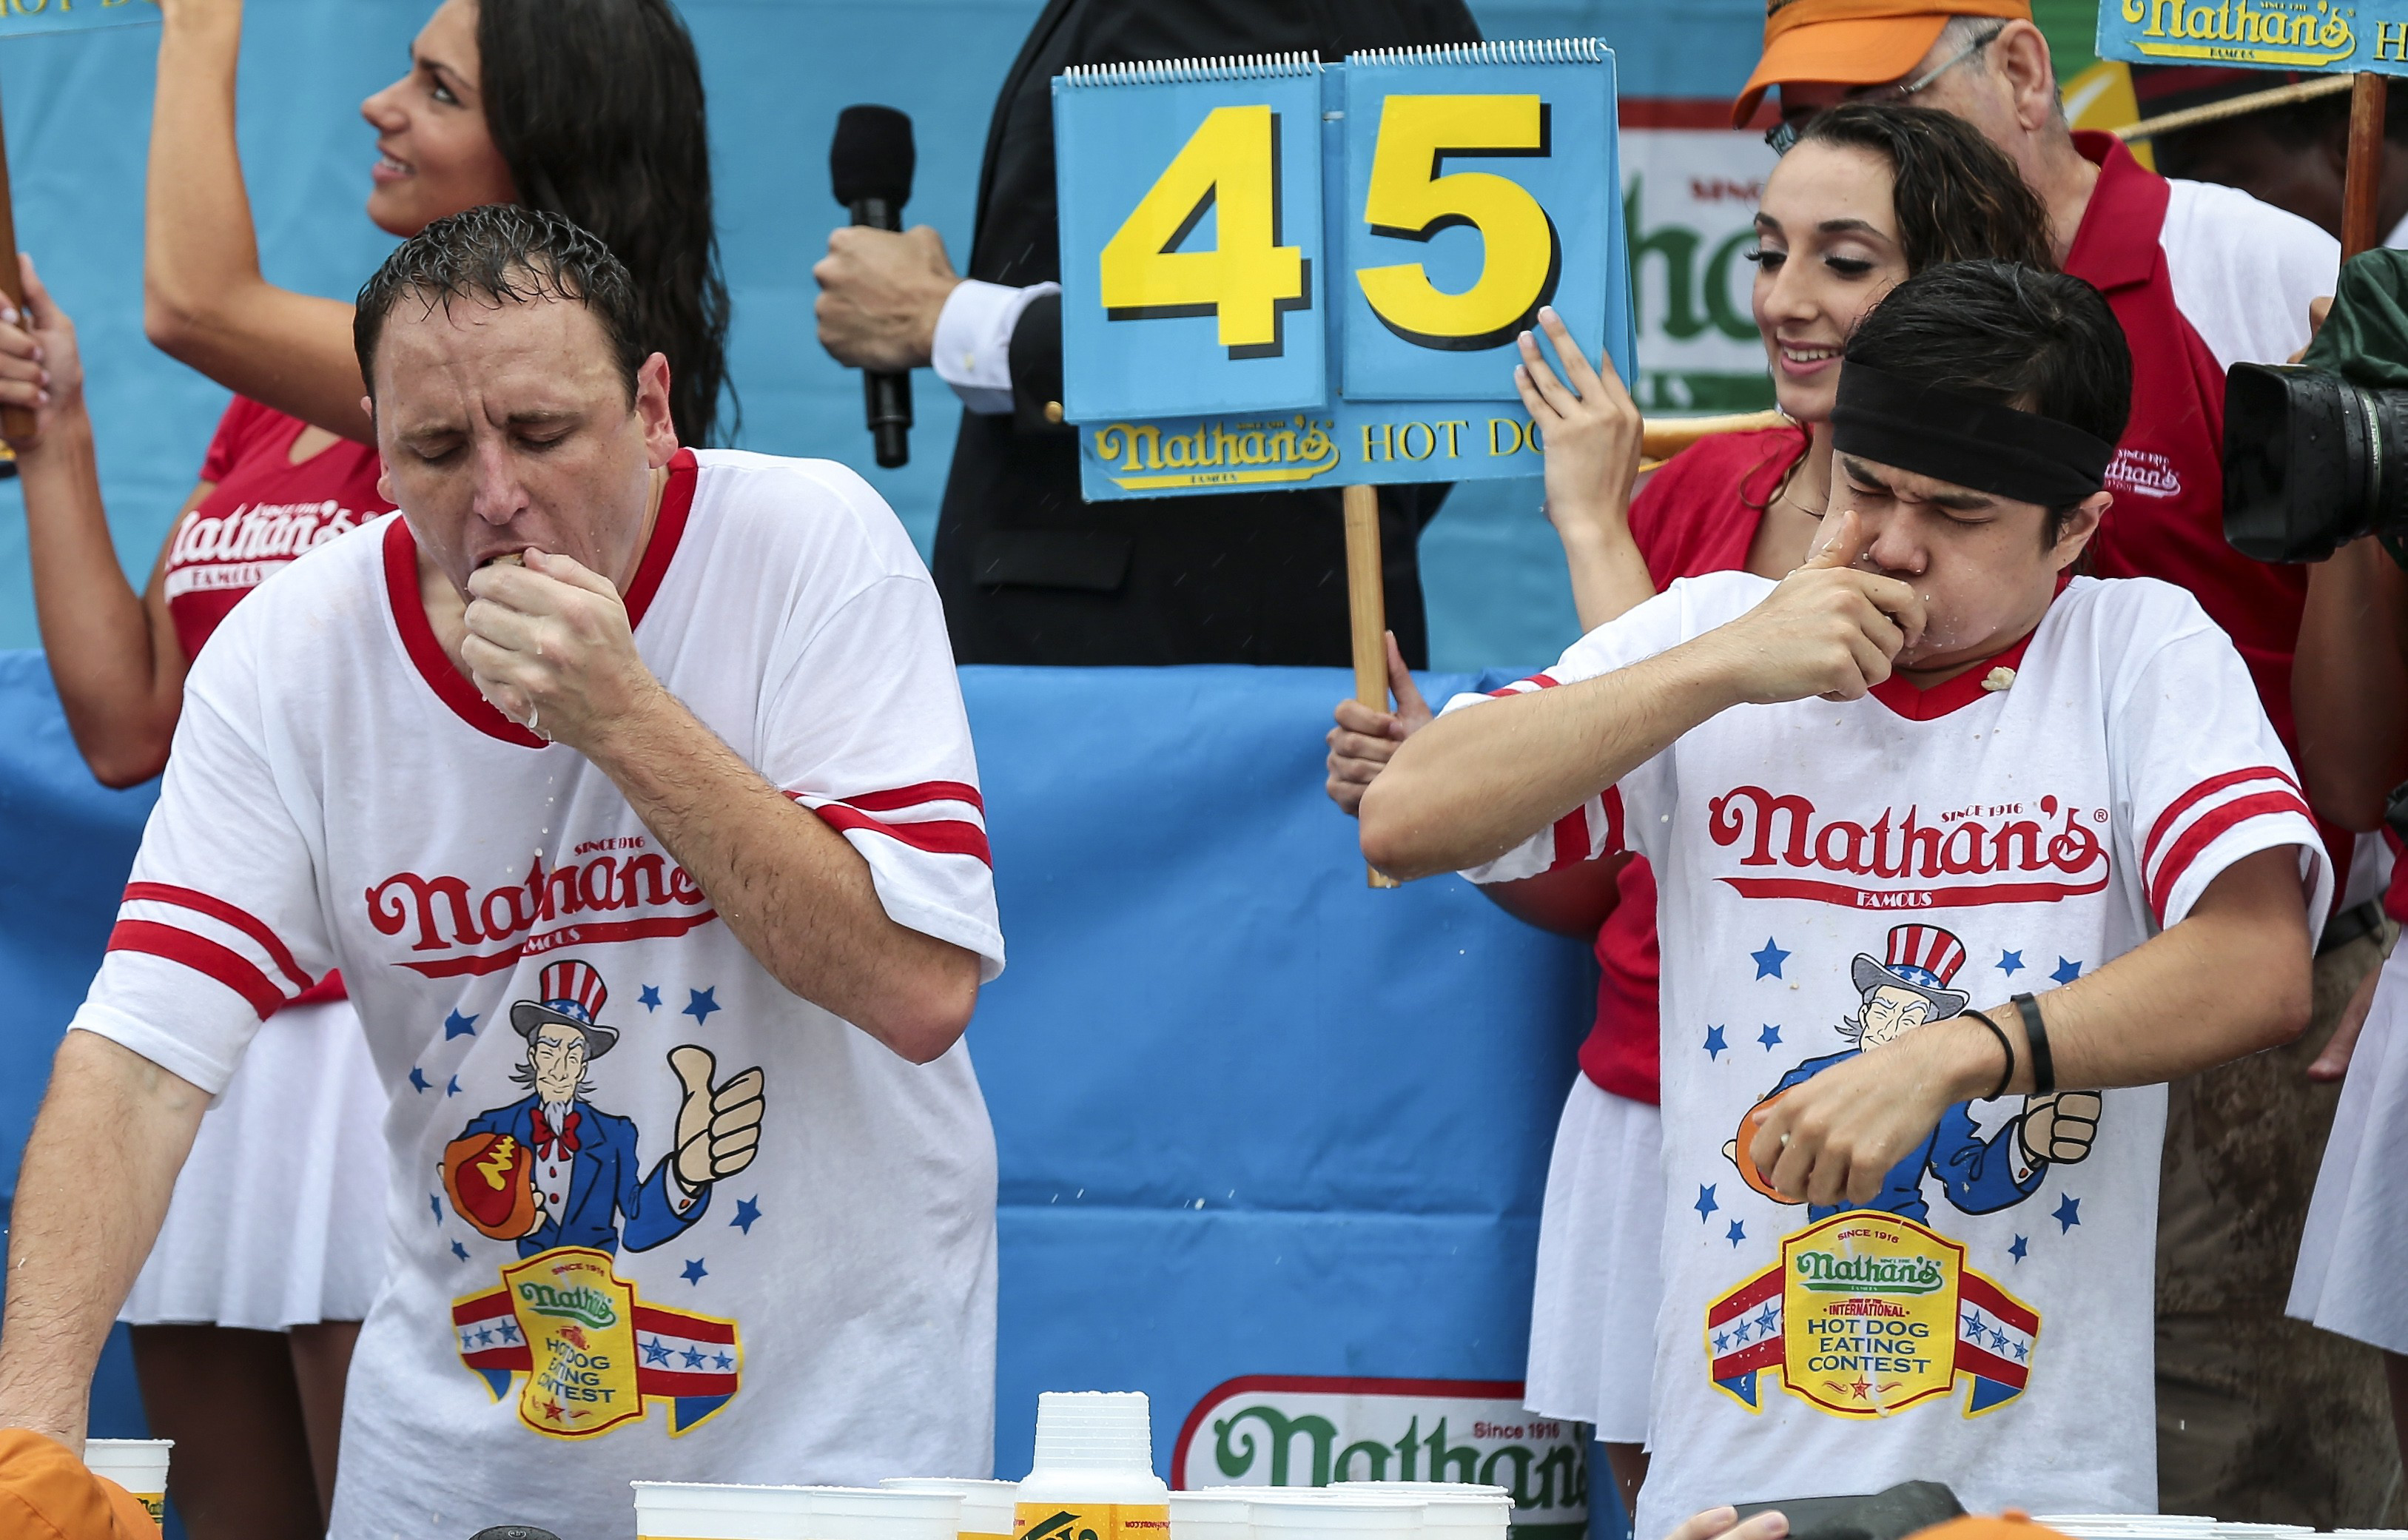 Hot Dog Contest Time